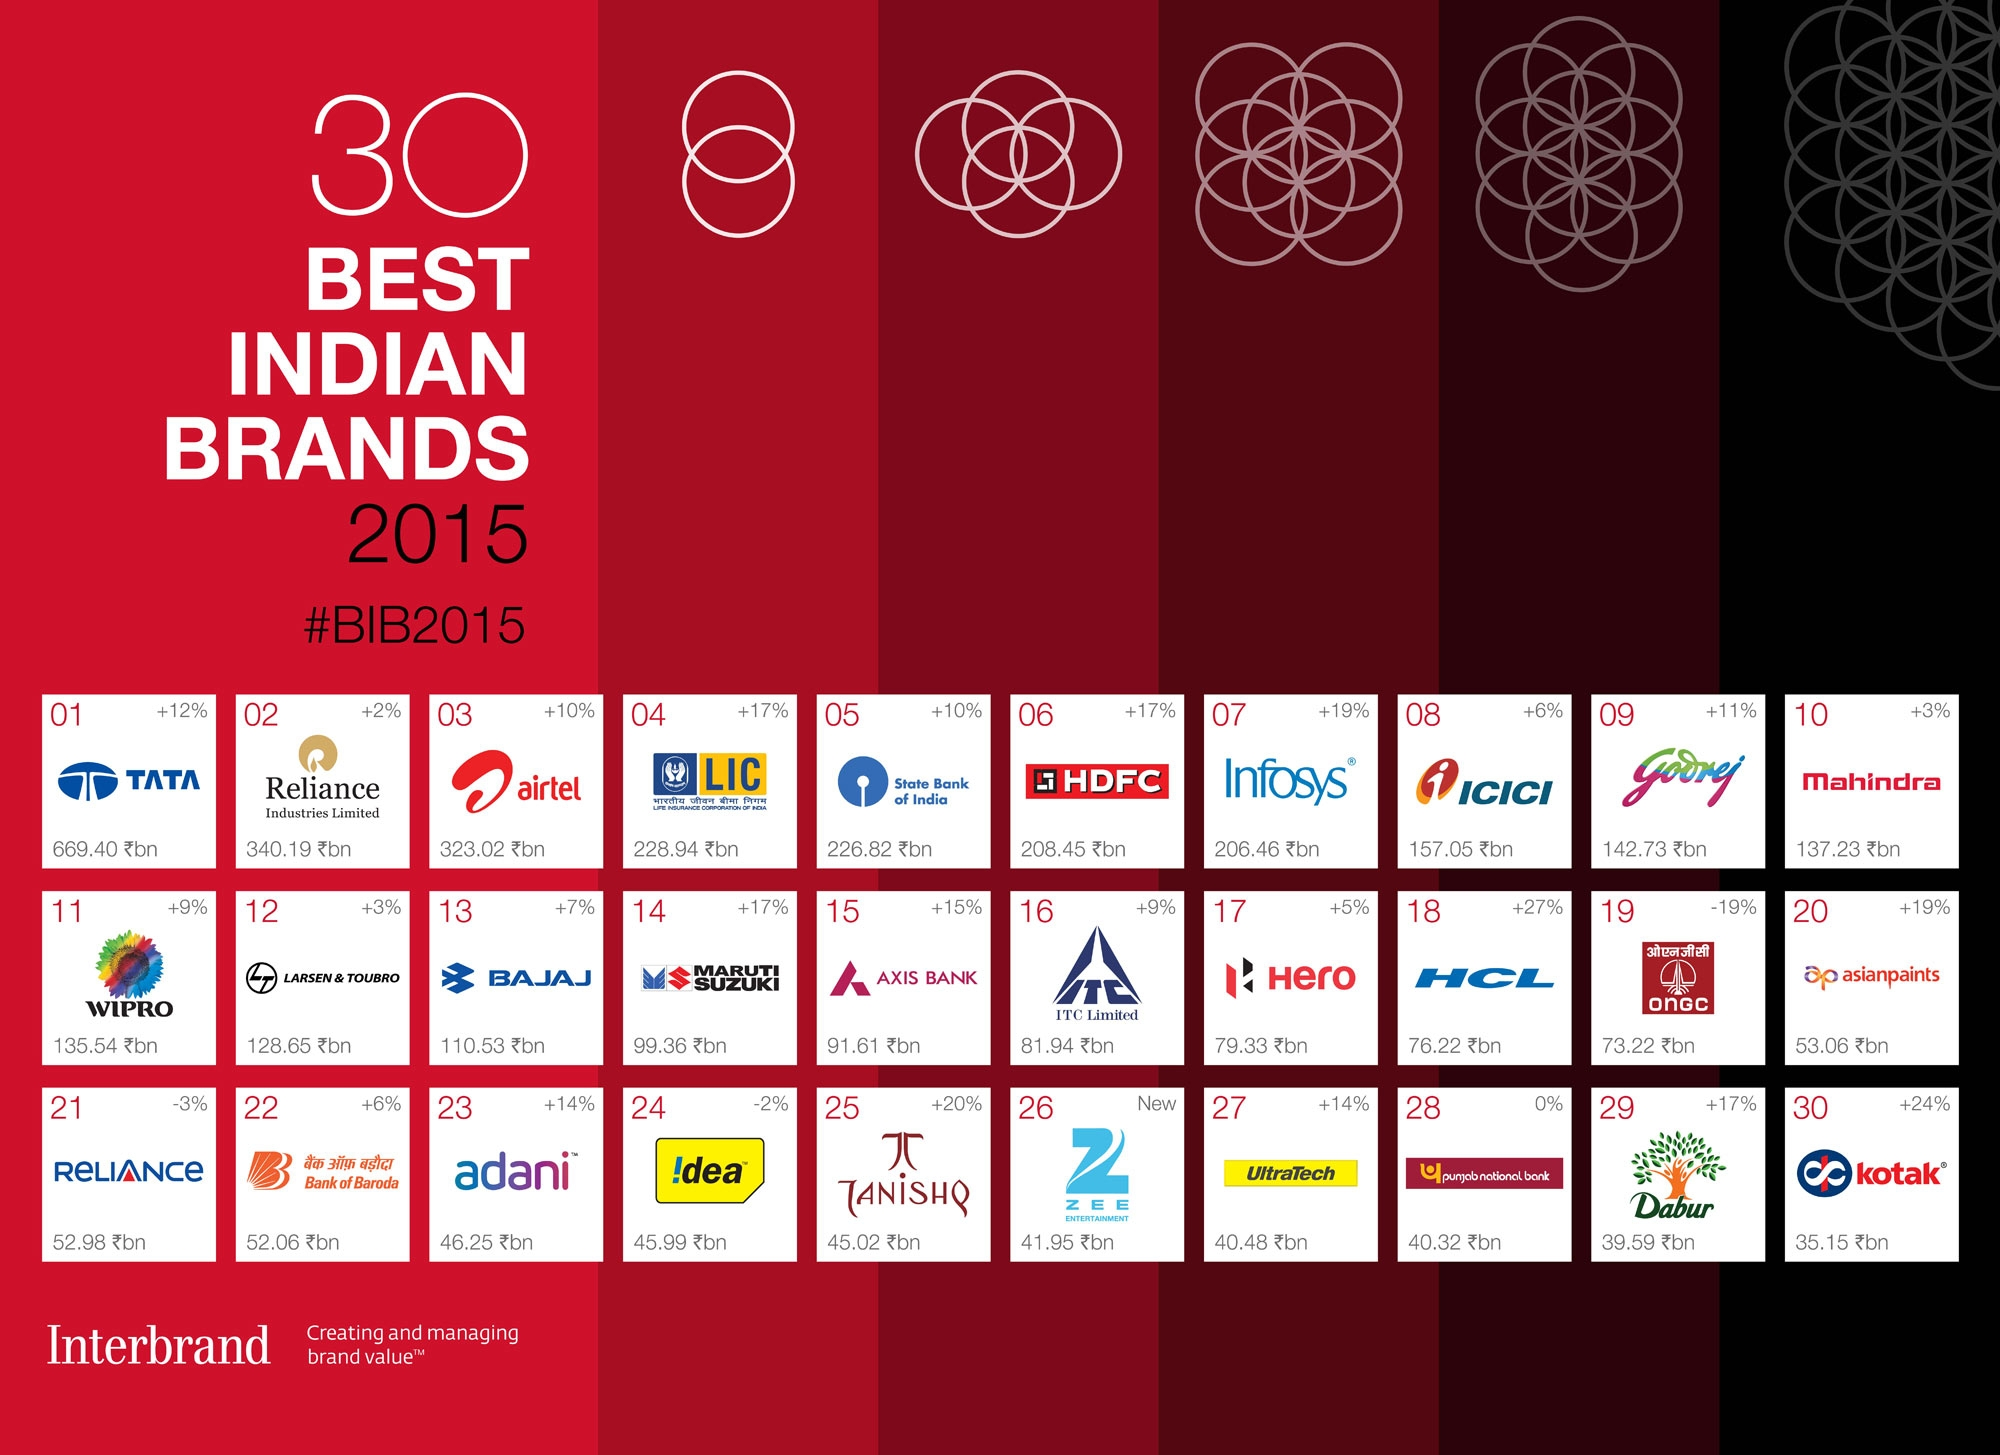 Zee Enterprises Makes It To Interbrand's 2015 Best Indian